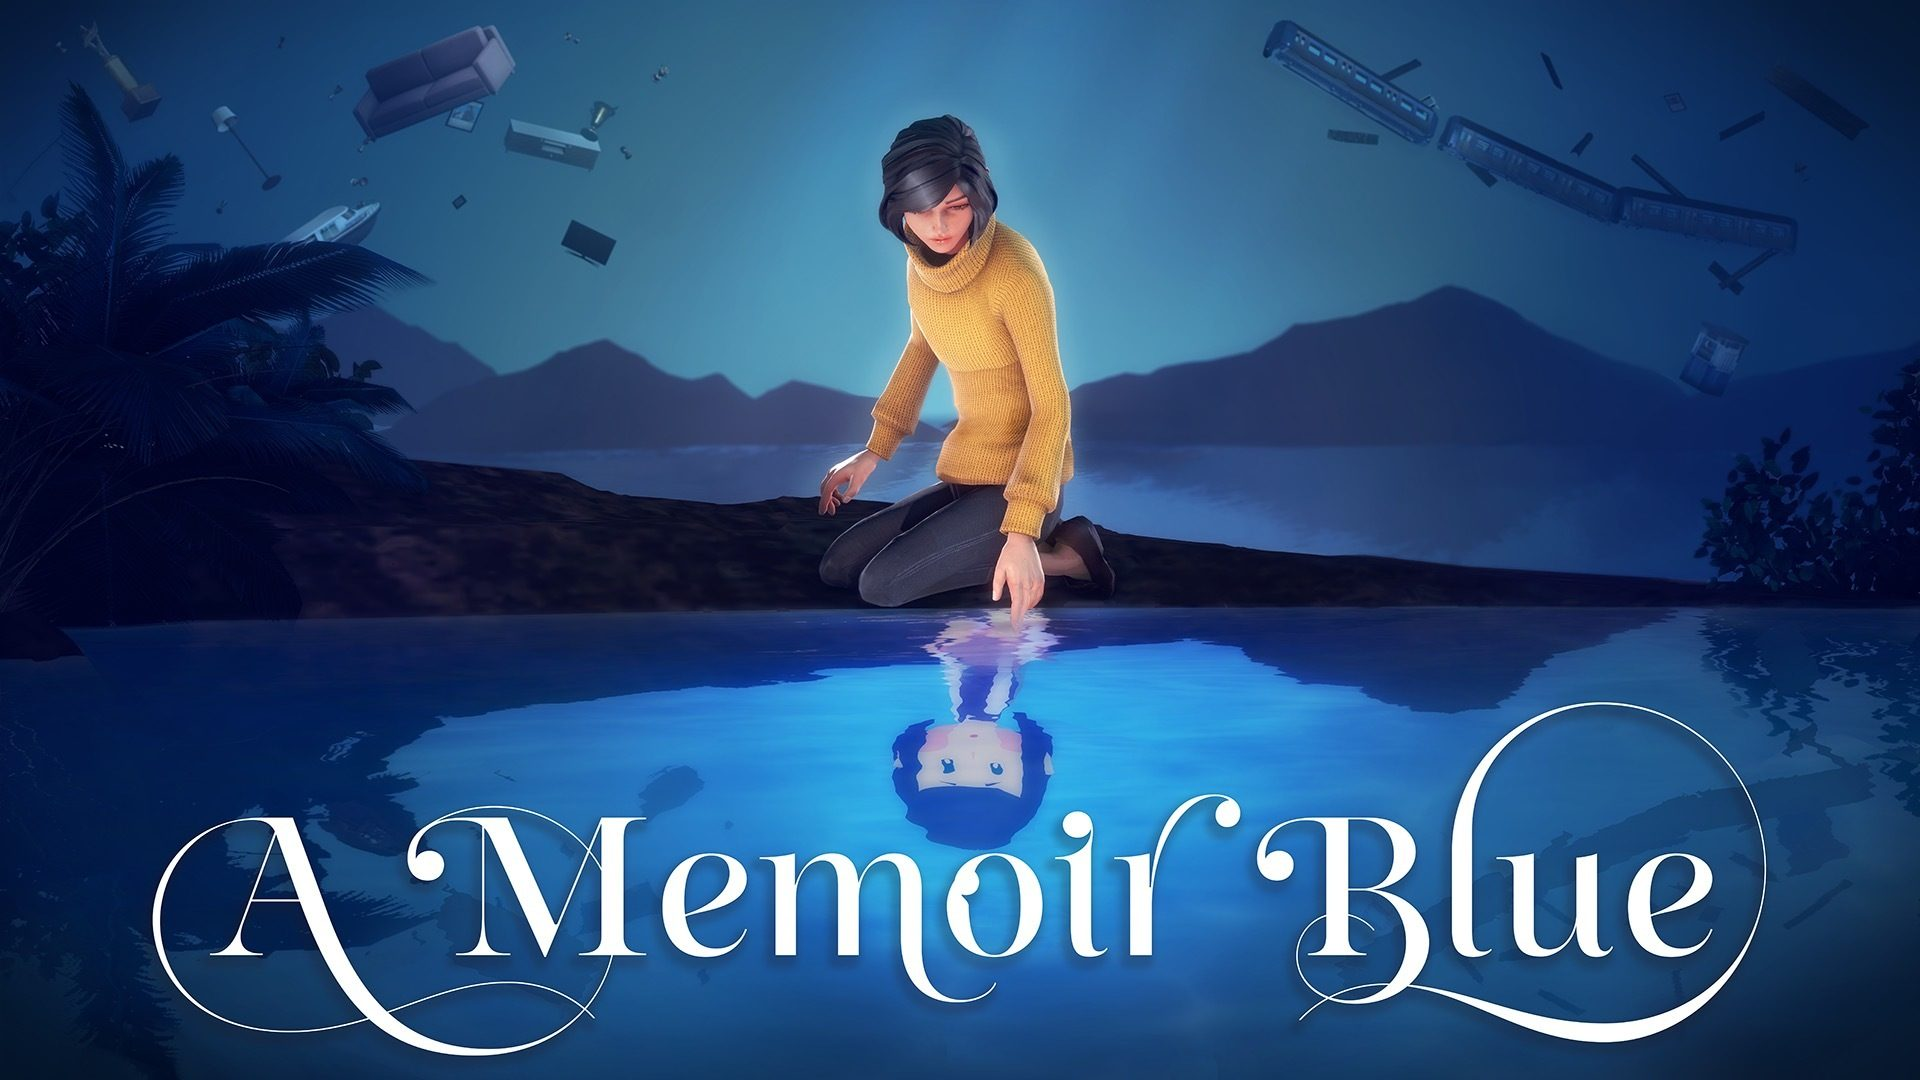 a-memoir-blue-tells-a-moving-story-absolutely-without-the-need-of-phrases